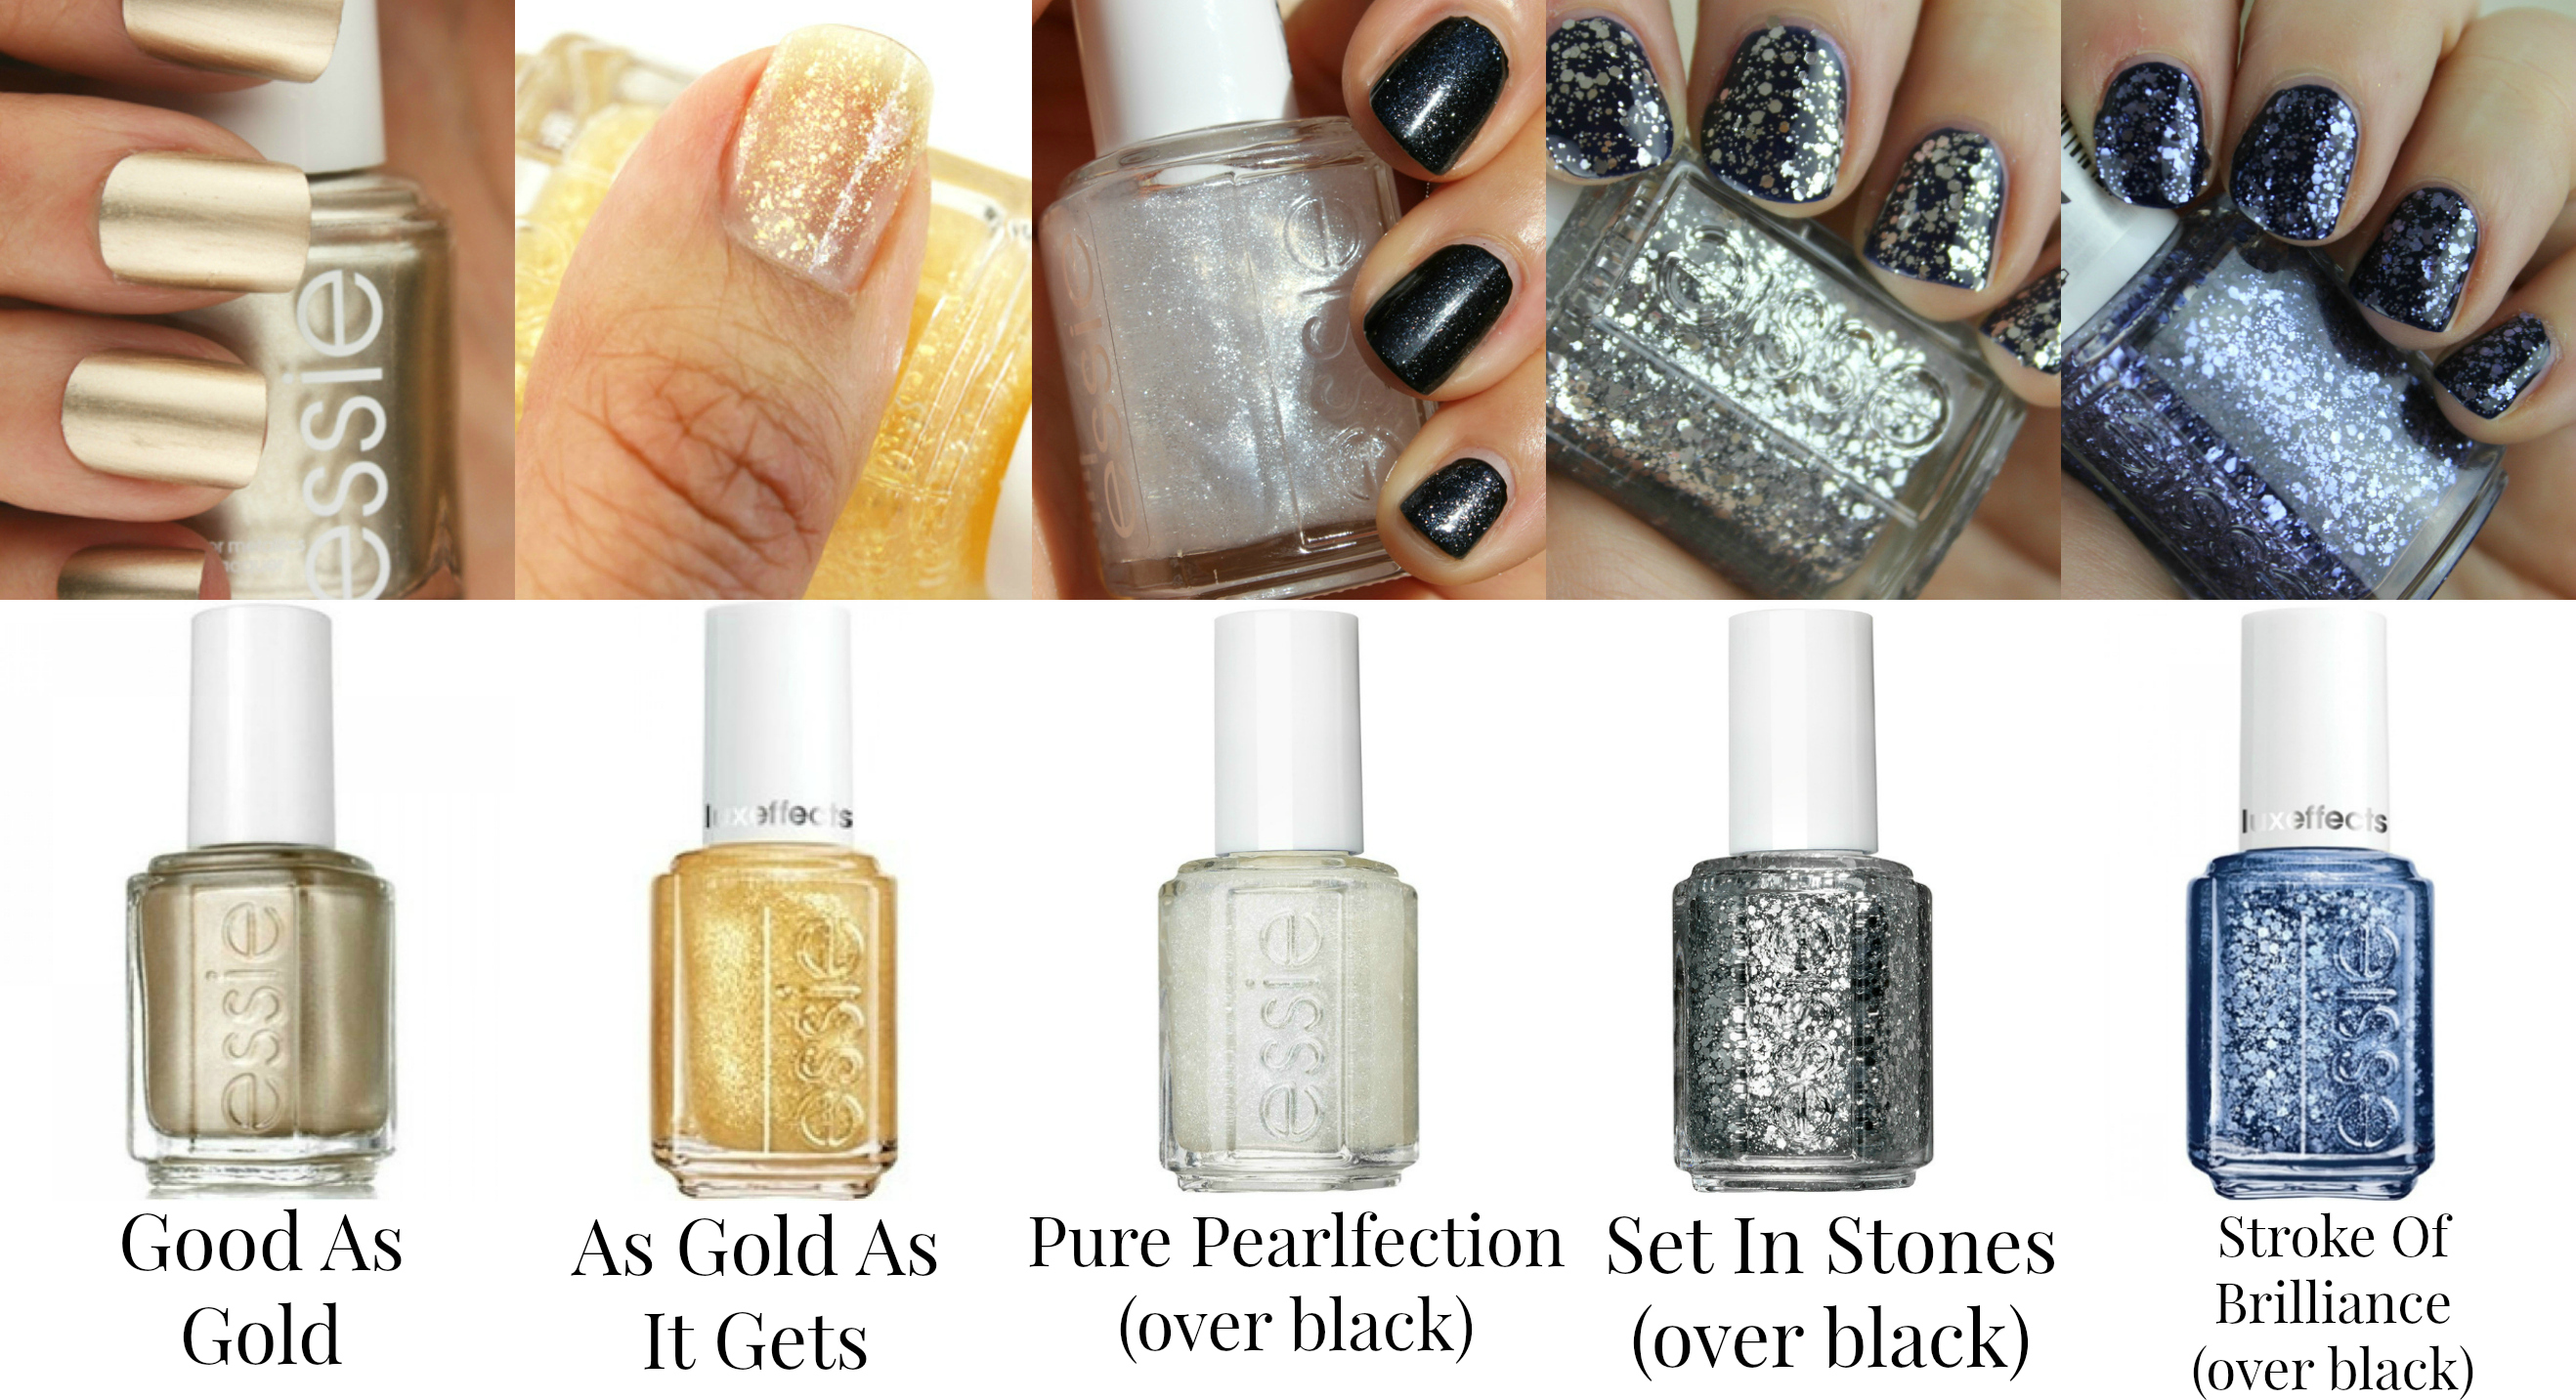 Essie Nail Polishes - Luxe Effects, Gold, Silver, Blue - Good As ...